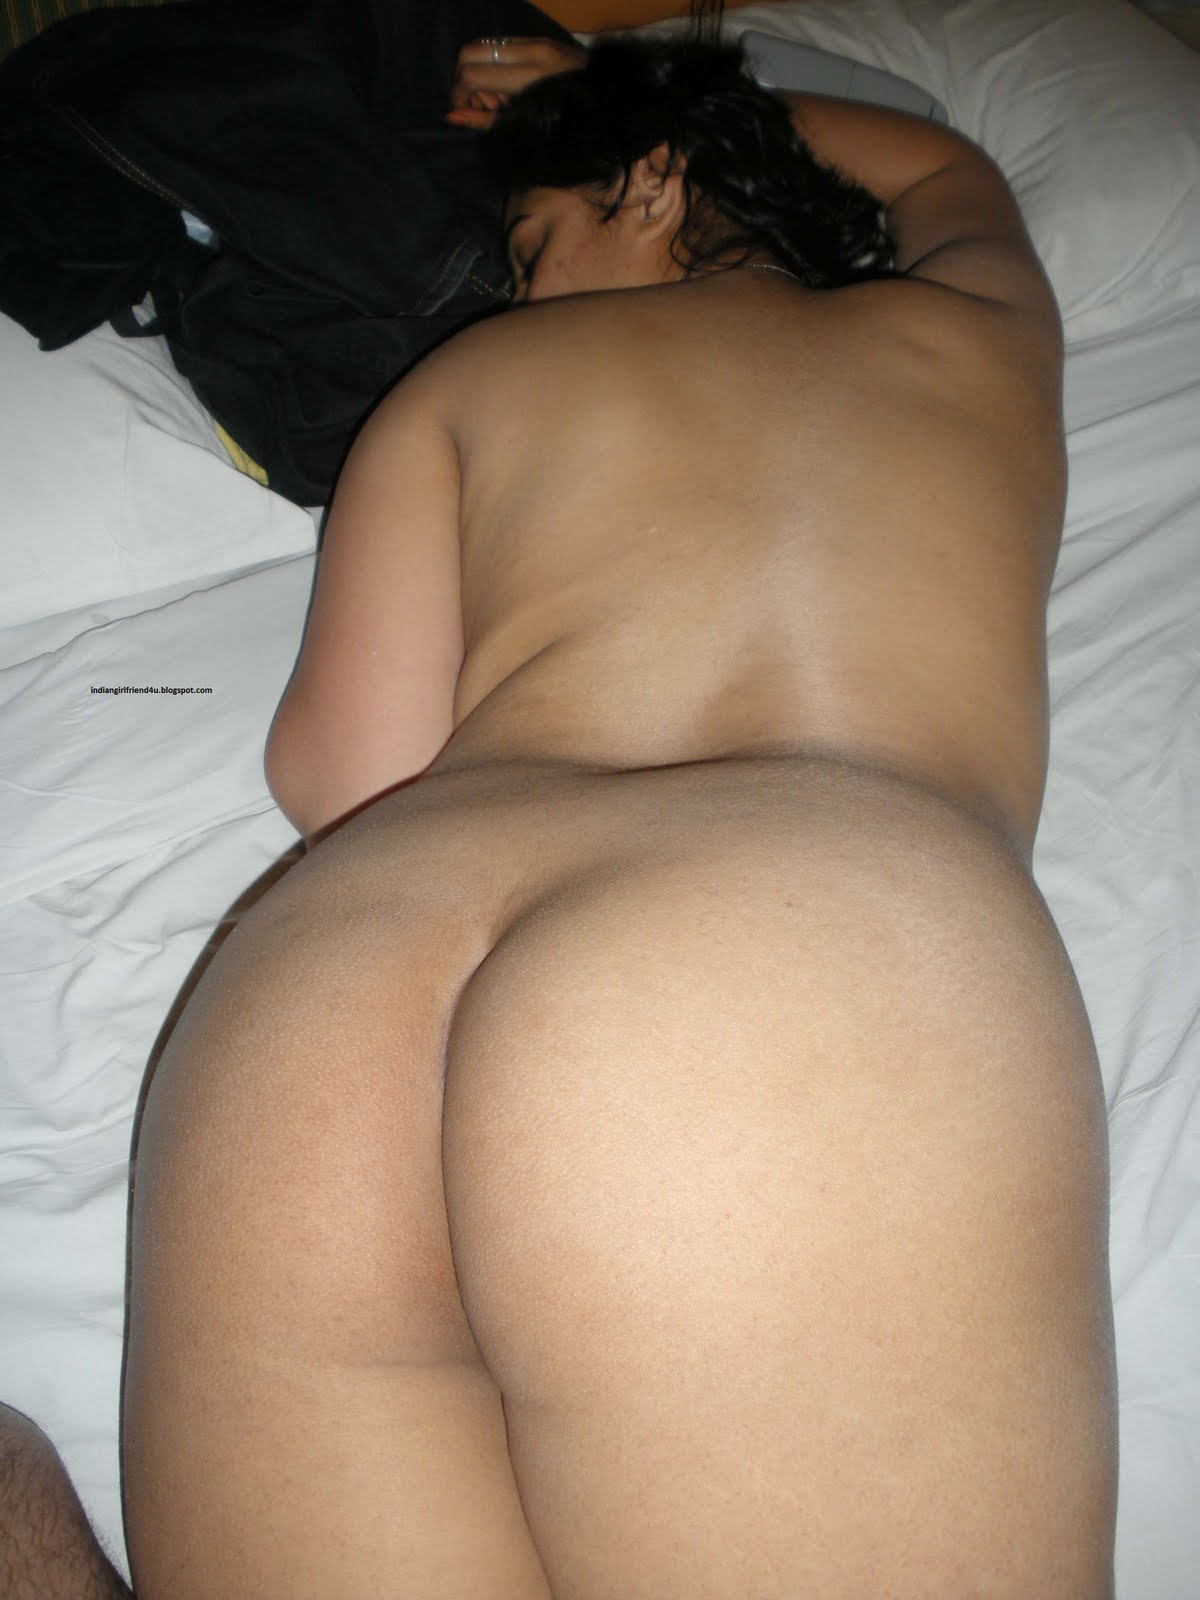 very hot sexy desi nude